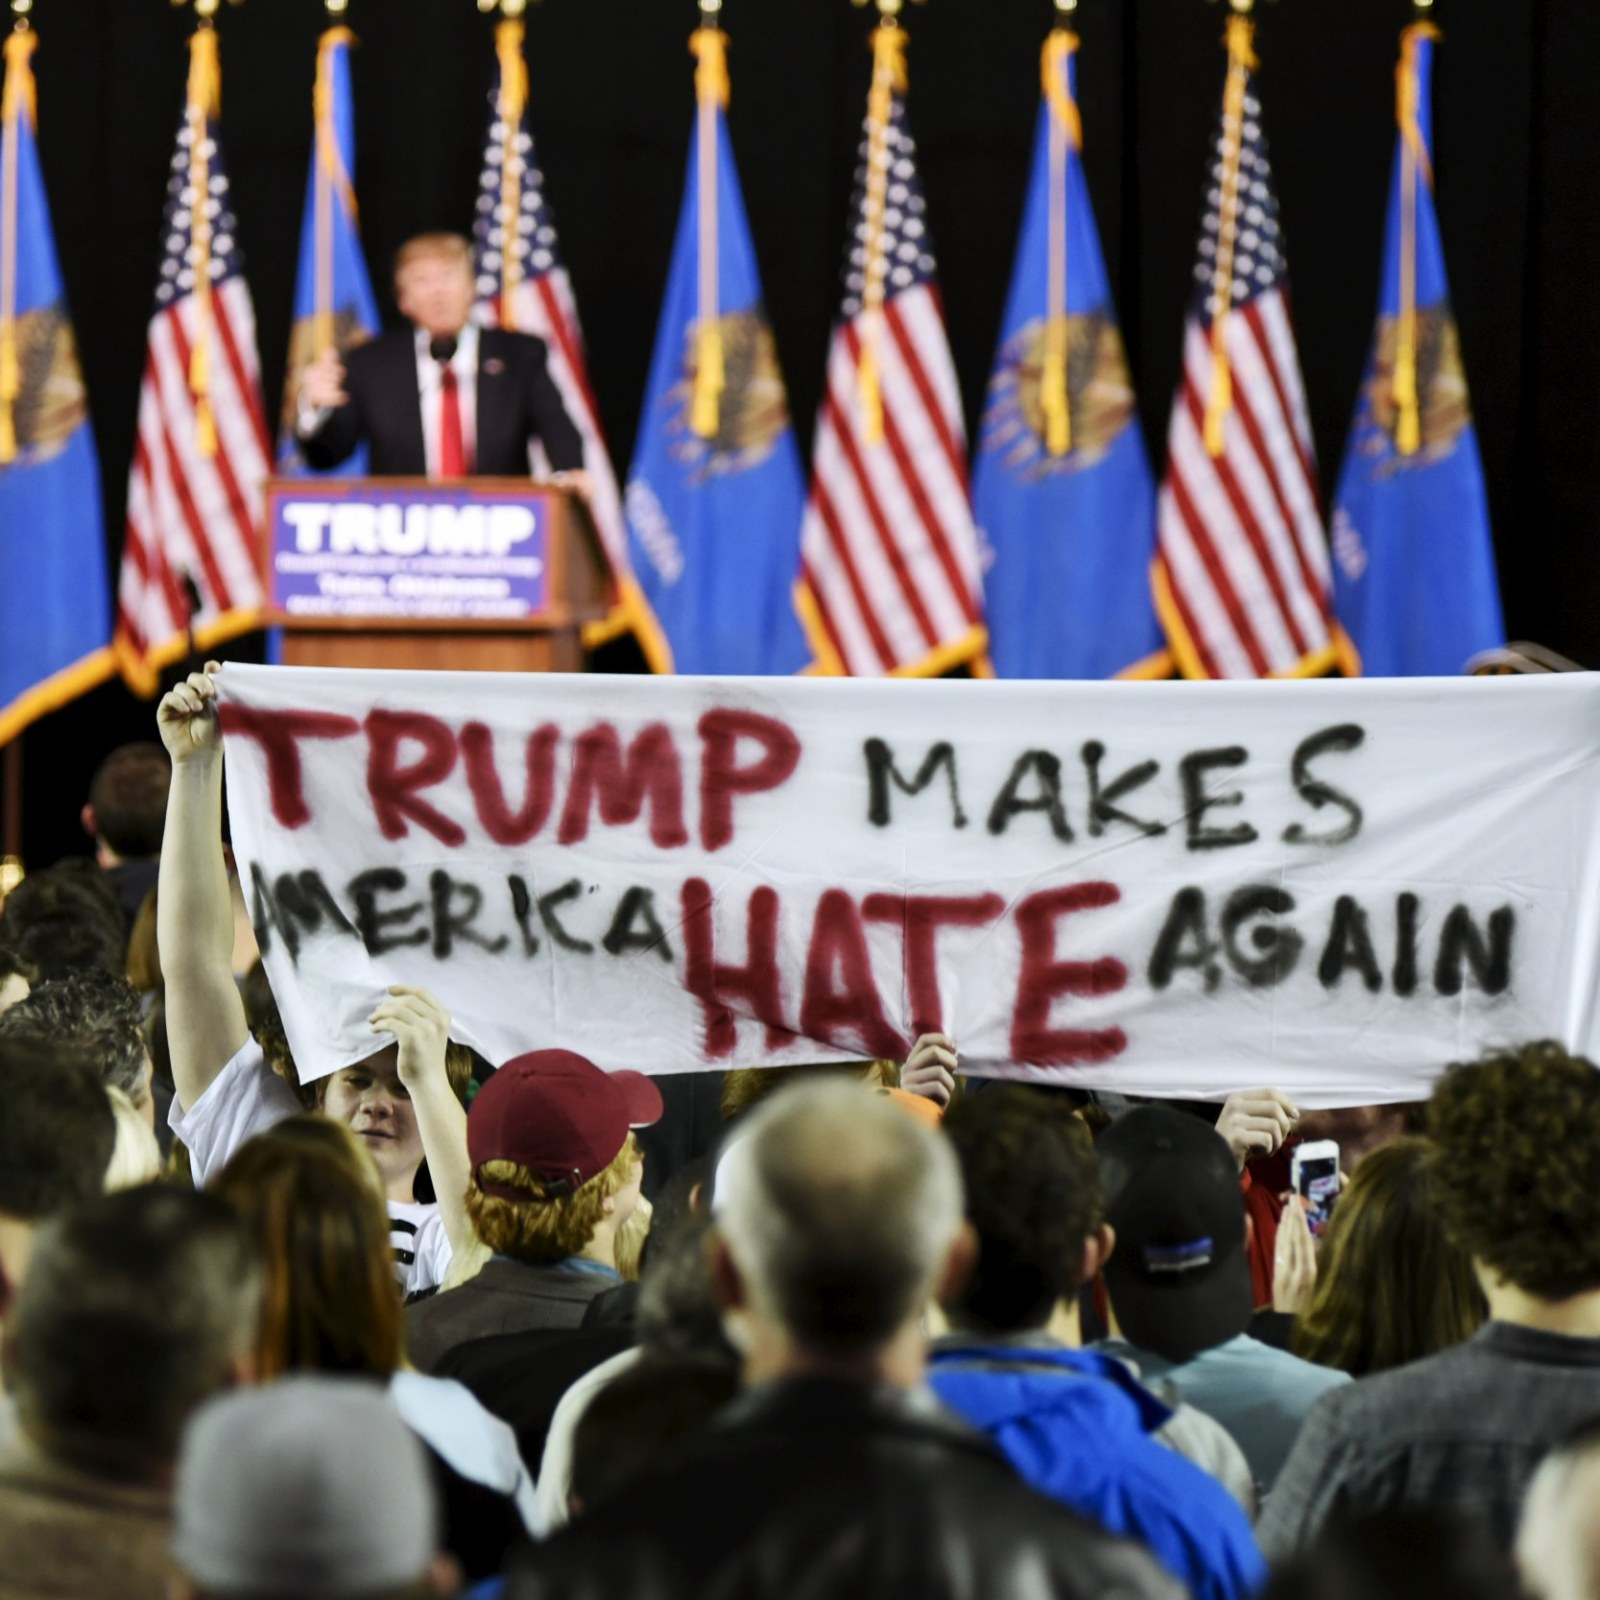 Snakes, Bugs and the KKK Lead Trump's Code of Hate